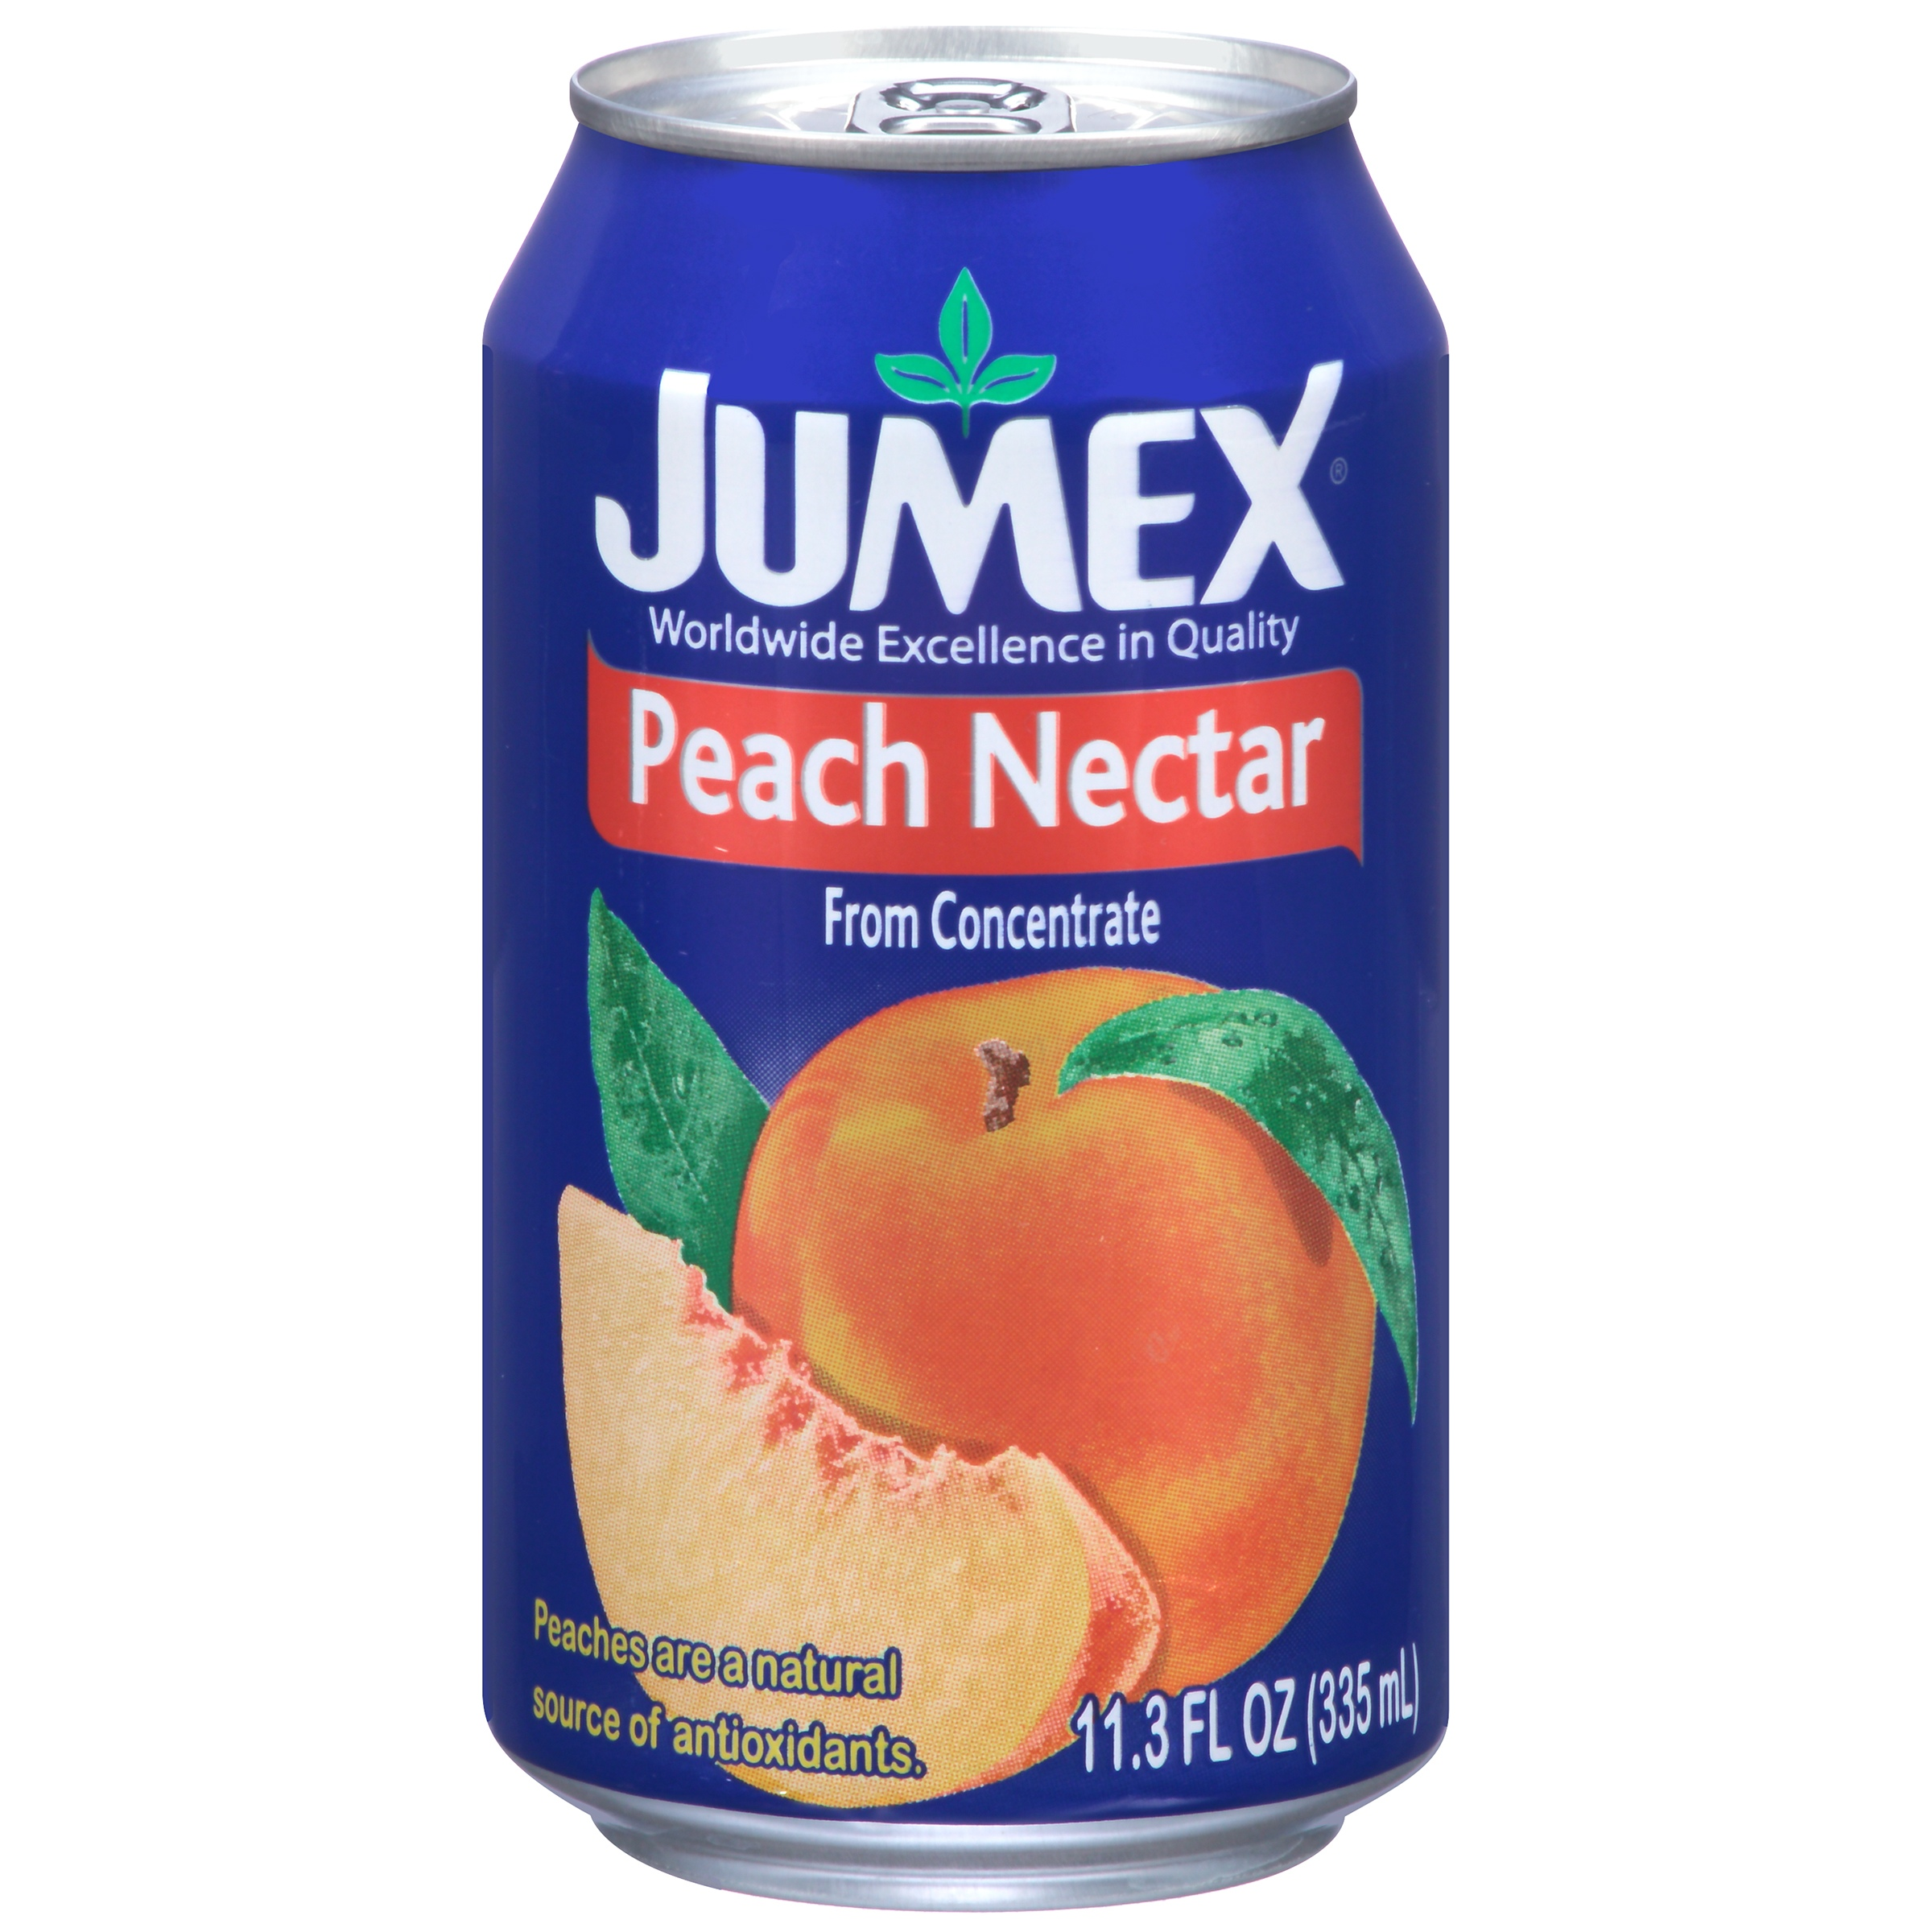 Jumex Peach Nectar from Concentrate, 11.3 Fl. Oz.